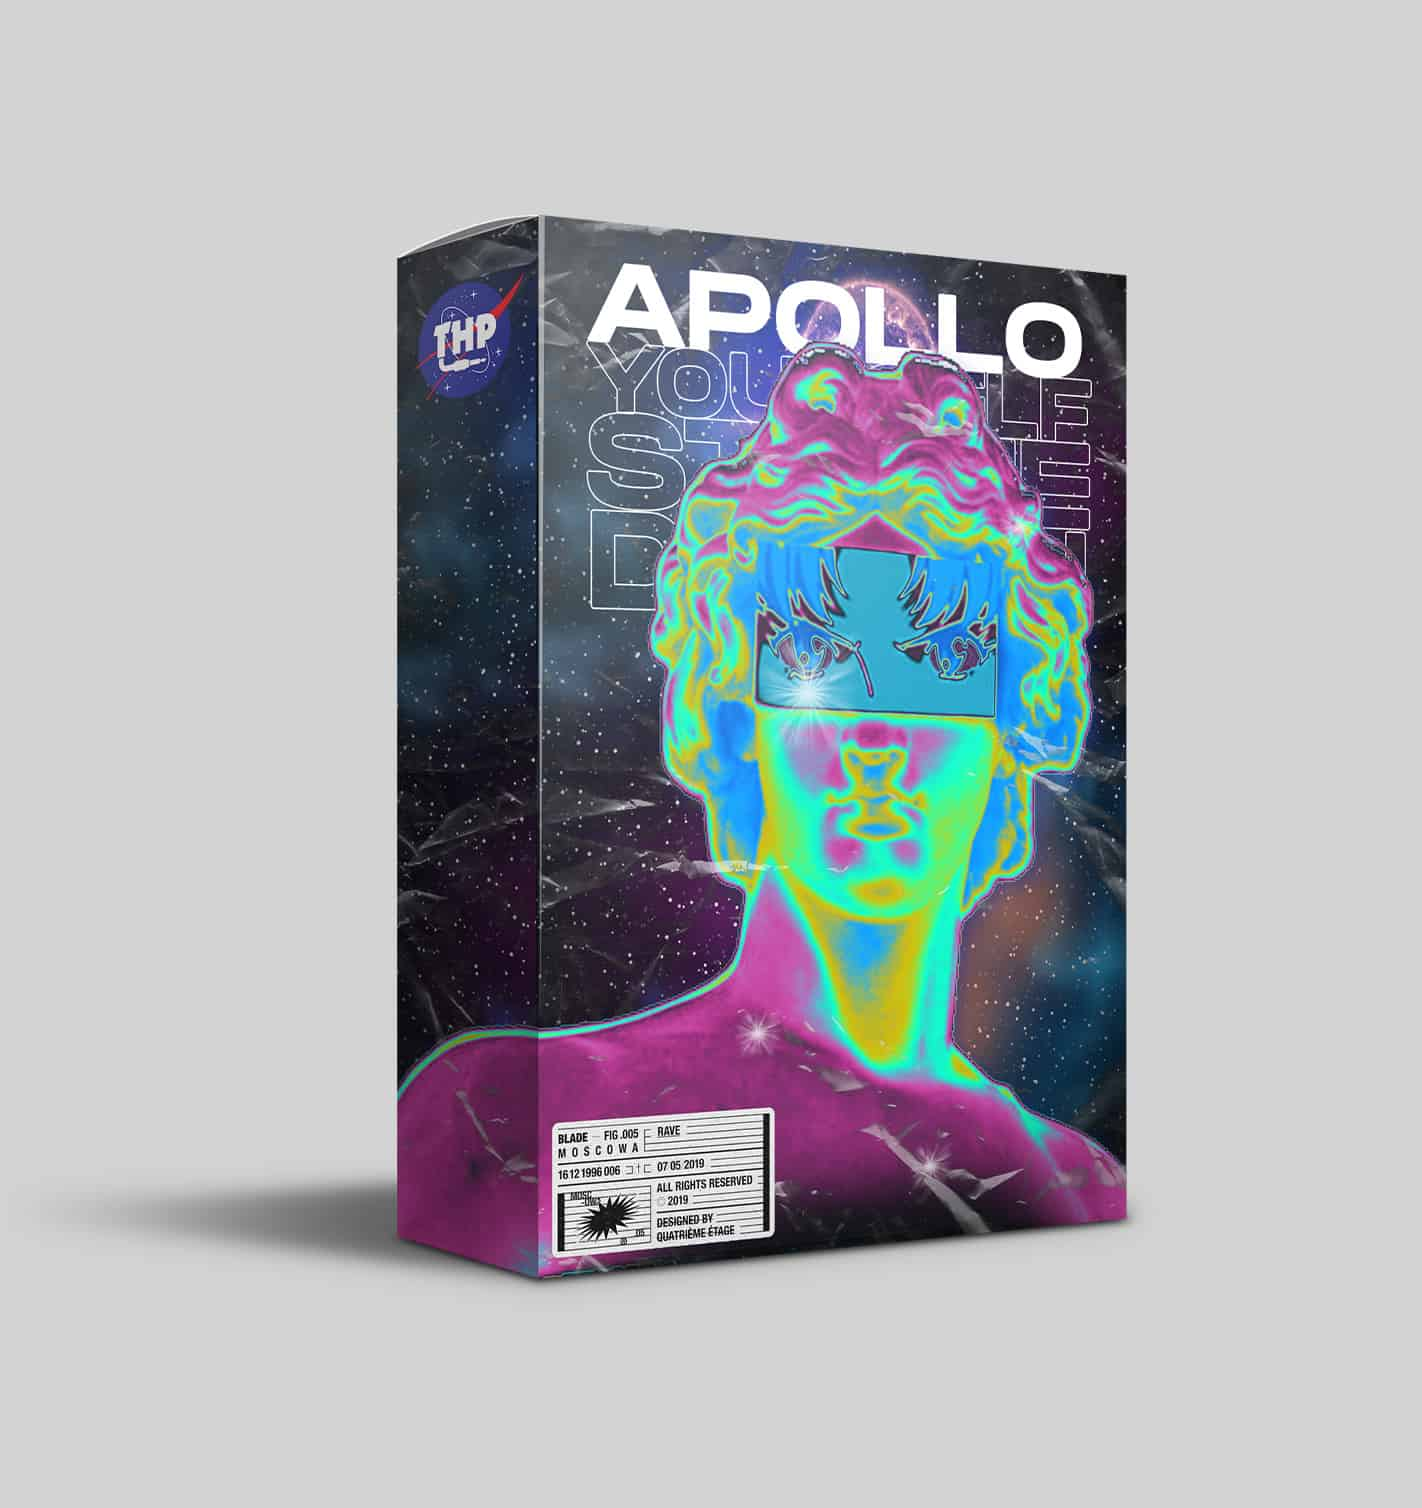 Apollo Sample Pack inspired by Cubeatz, PVLACE, Whippa